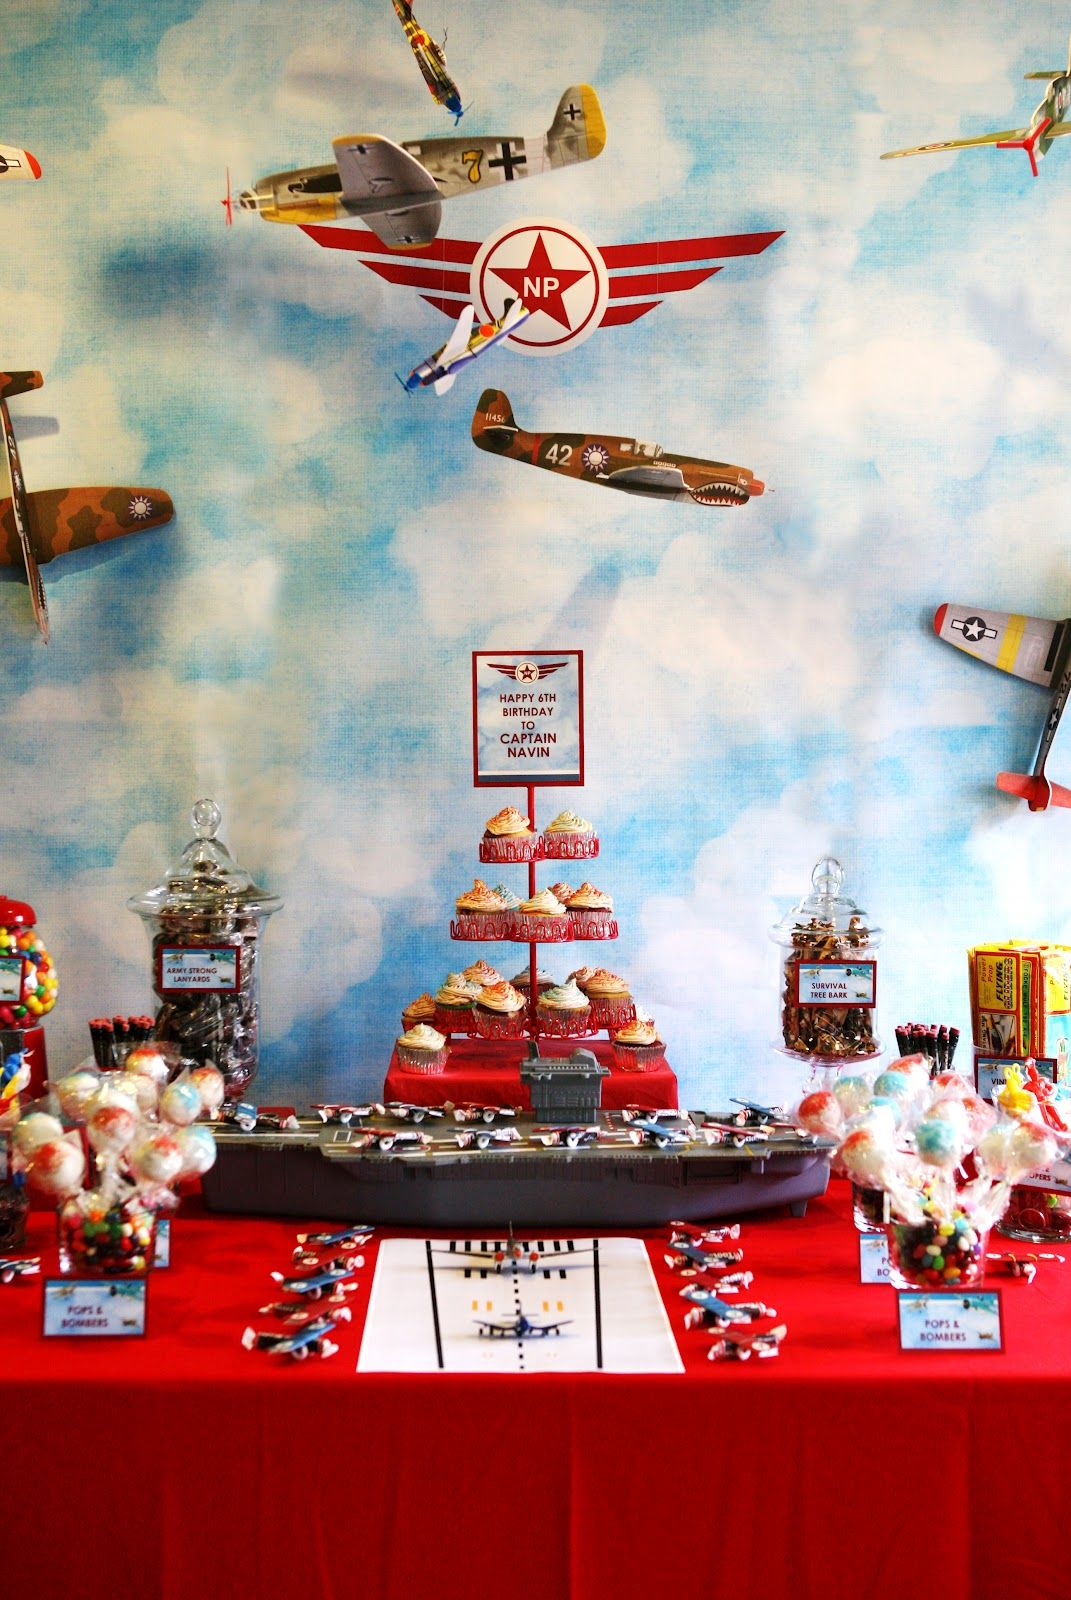 Vintage Planes themed birthday party Our Design Style